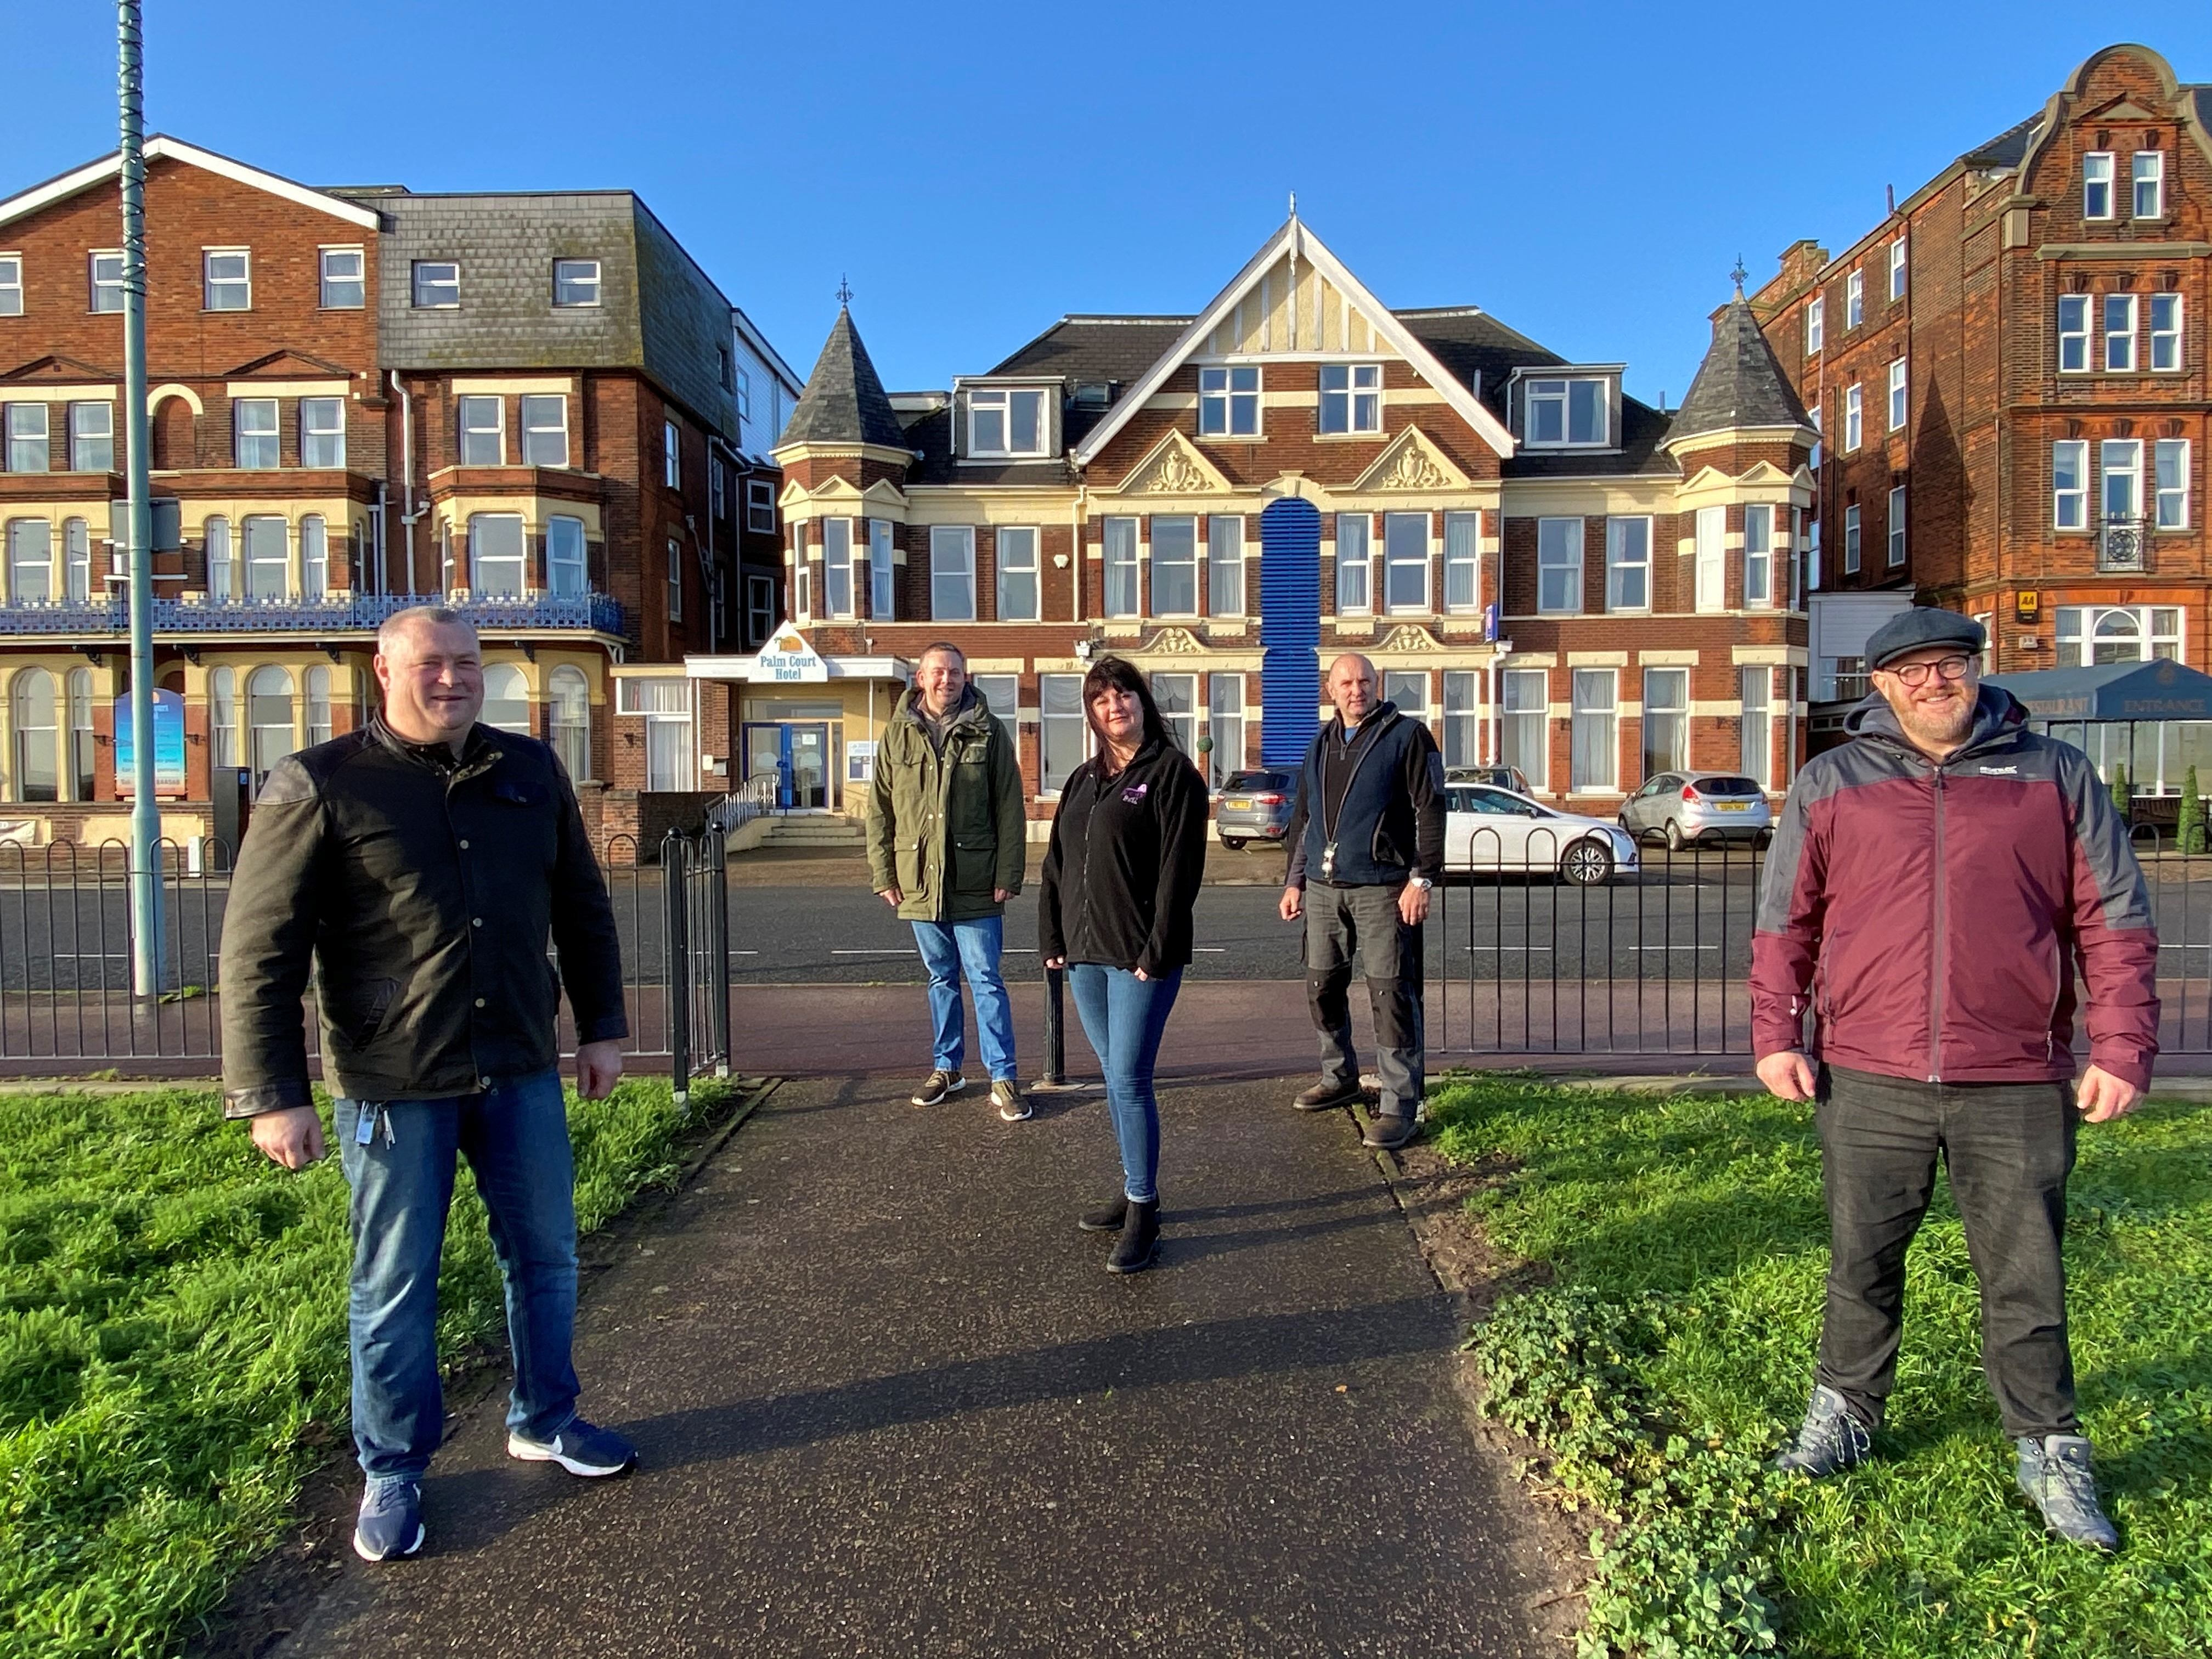 Left to right: Jason Delf, Nigel Carter, Tessa Fennell, Nick Delf and Scott Barnes are some of the team from Palm Court Hotel and Marine Lodge in Great Yarmouth taking part in a 10-mile sponsored walk to raise money for the Salvation Army's Christmas Appeal.